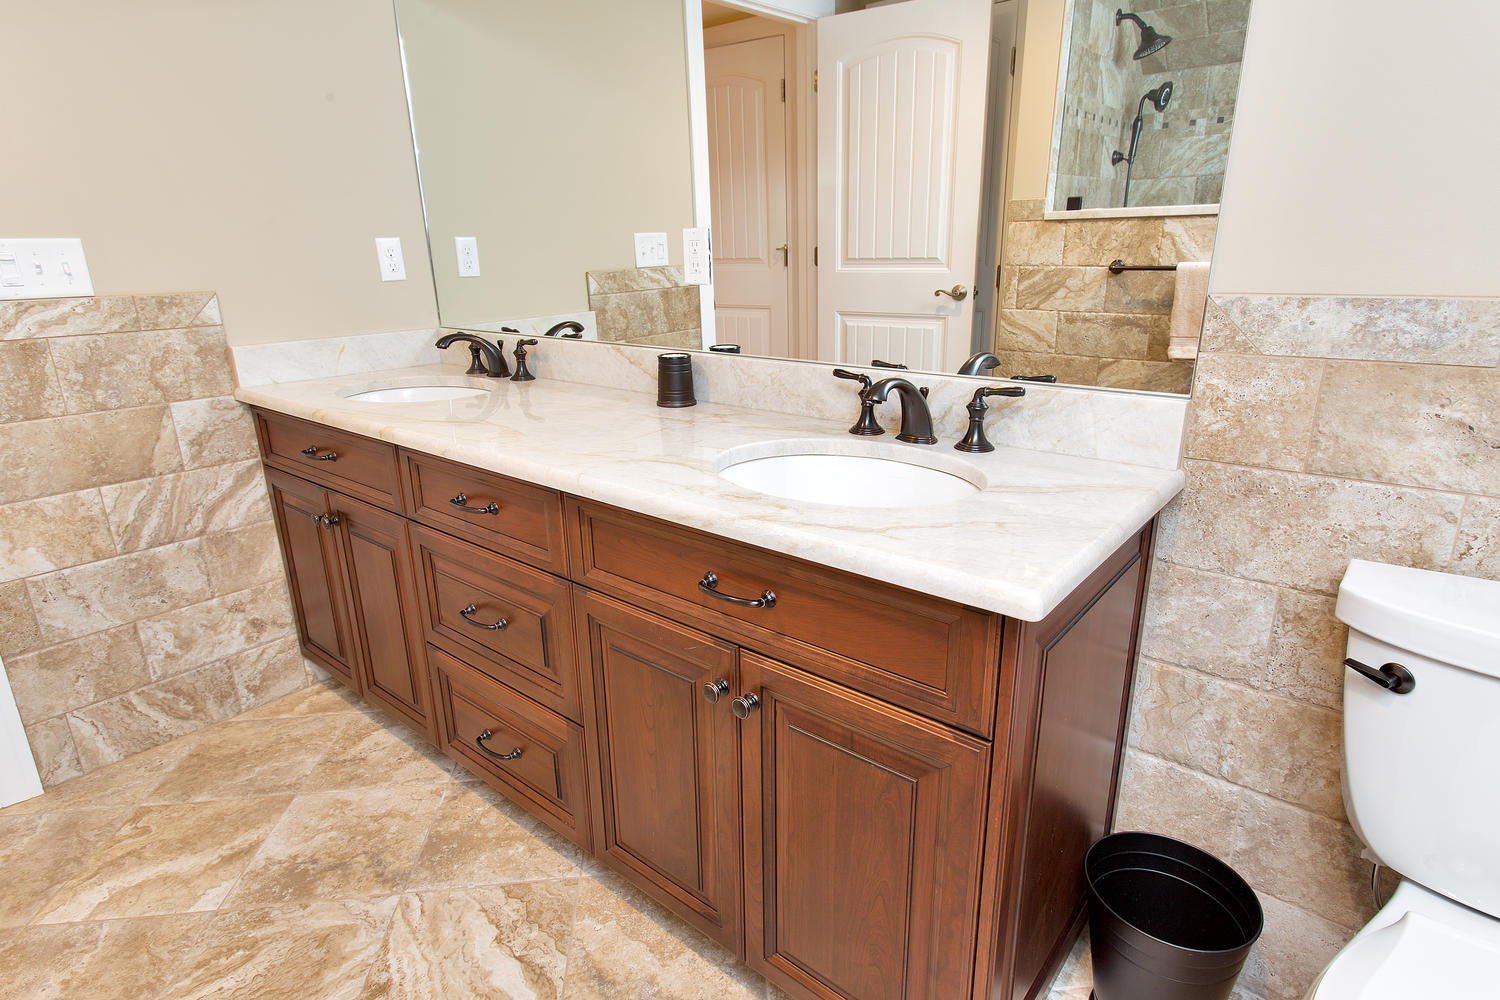 Bathroom vanities with makeup area - Double Bathroom Vanities With Makeup Area